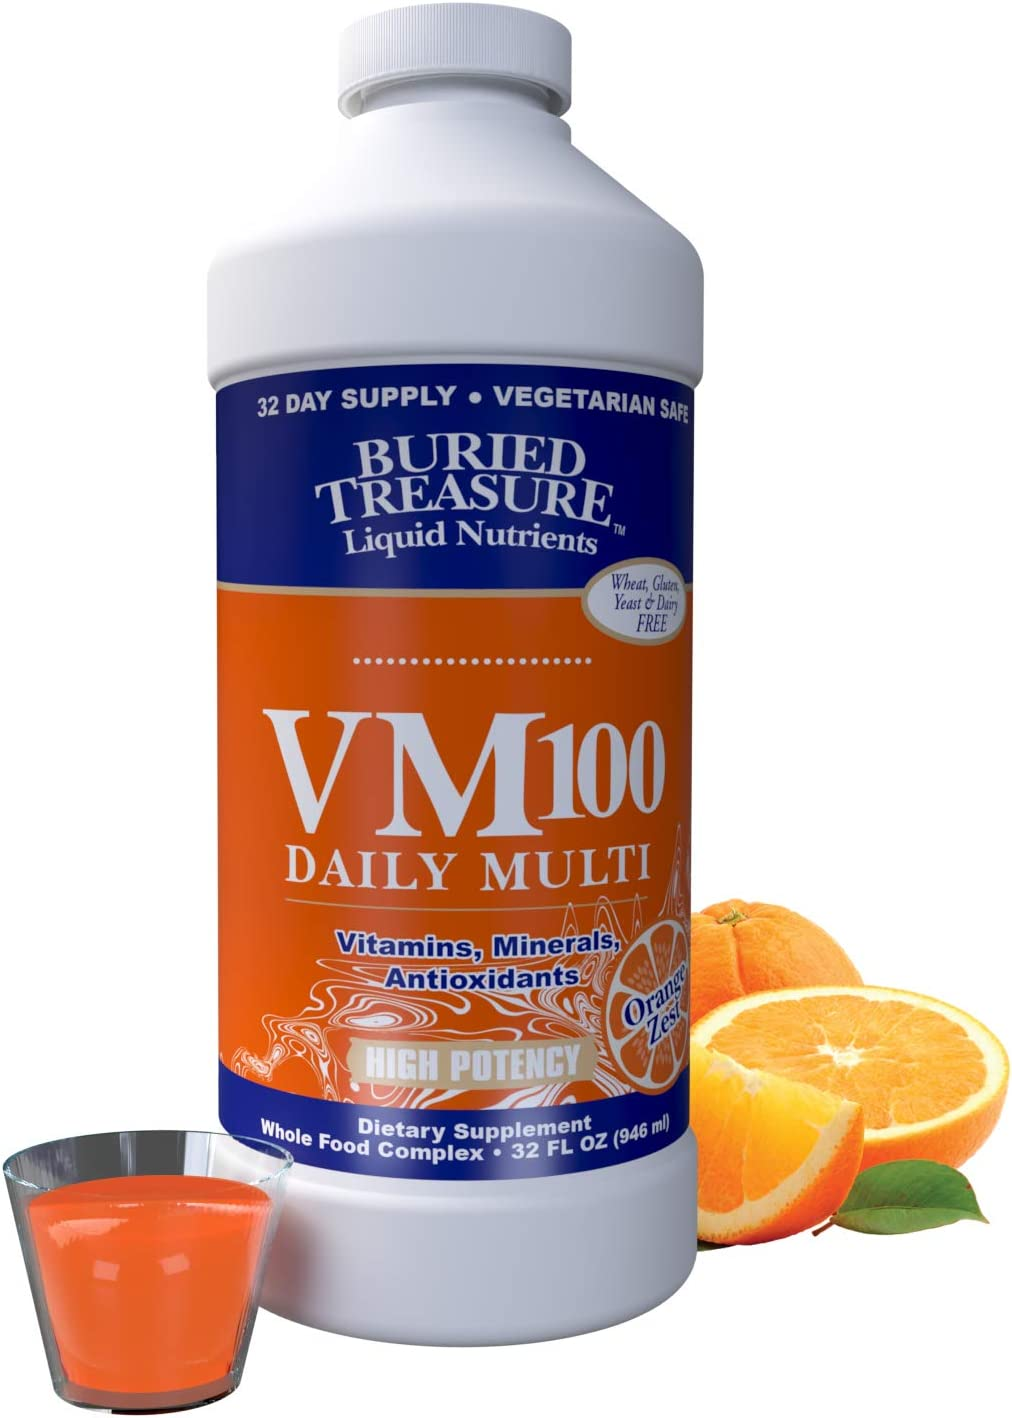 Buried Treasure VM100 Daily Multi Liquid Vitamins and 70 Minerals Plus Antioxidants Supplement Maximum Absorption Great Tasting, Orange Zest Flavor 32 Servings 32 oz. with Dose Cup